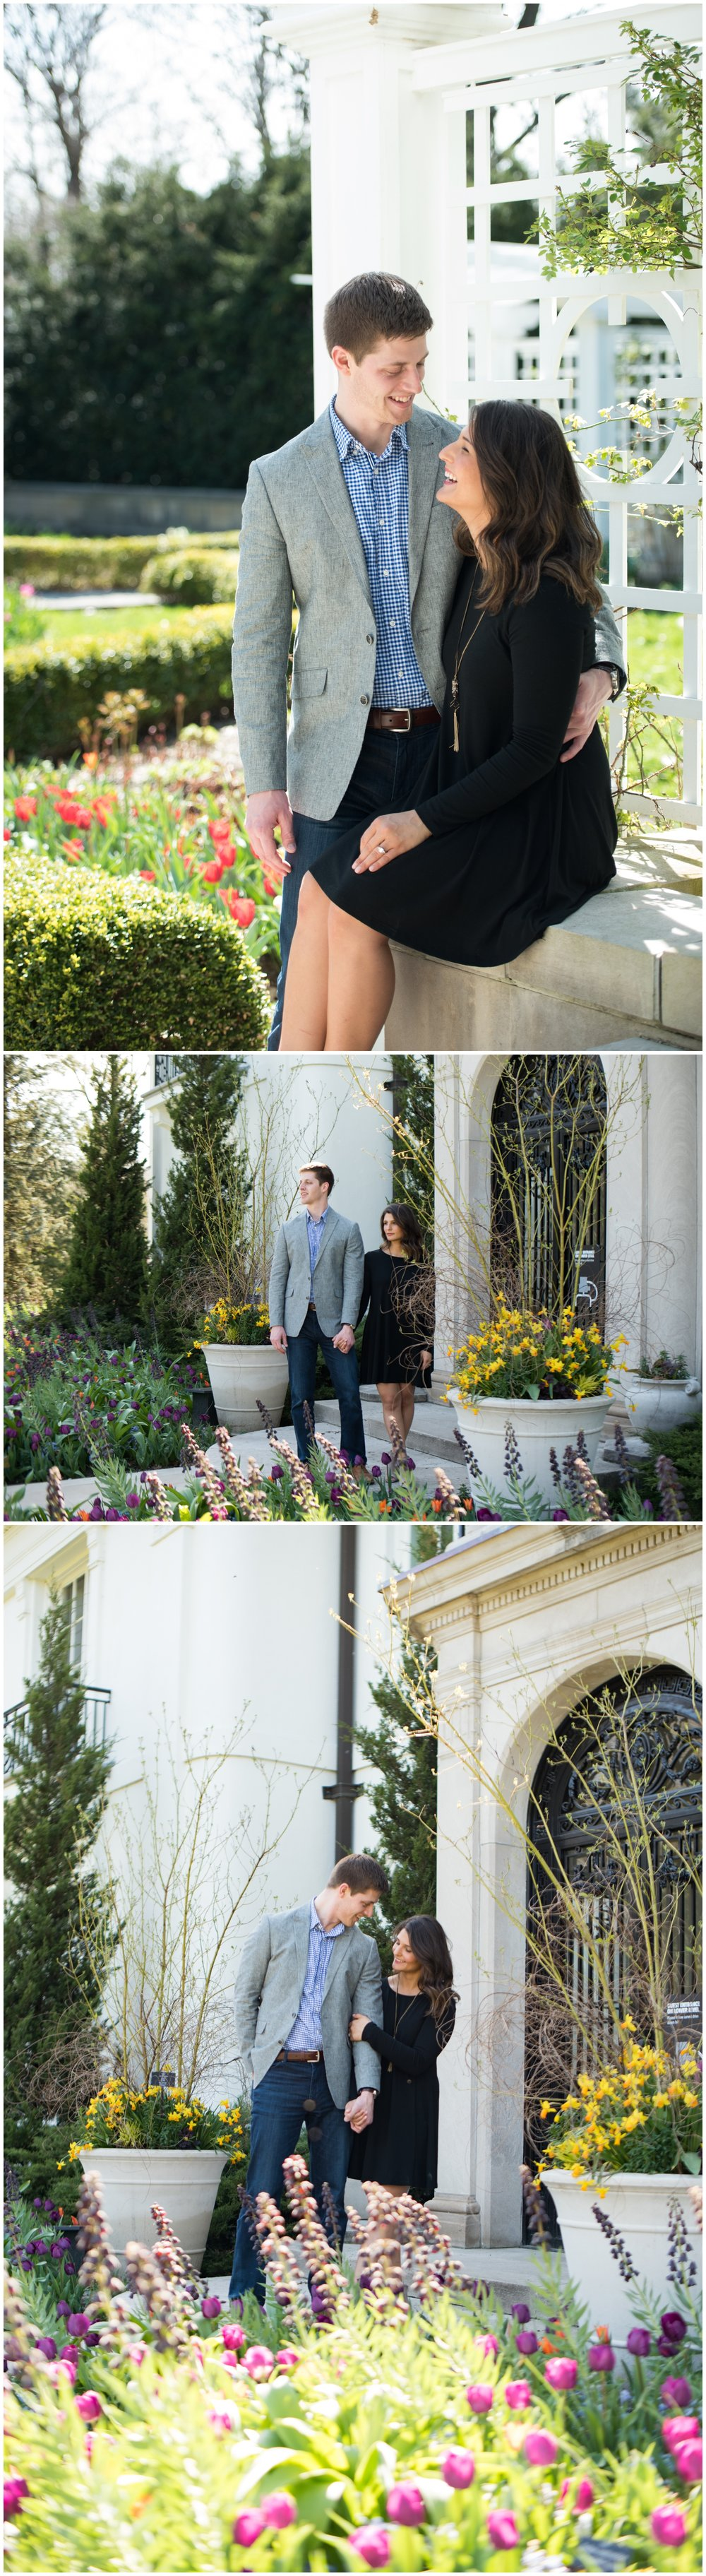 Indianapolis Engagement Session at the IMA by Rachael Foster Photography_0006.jpg